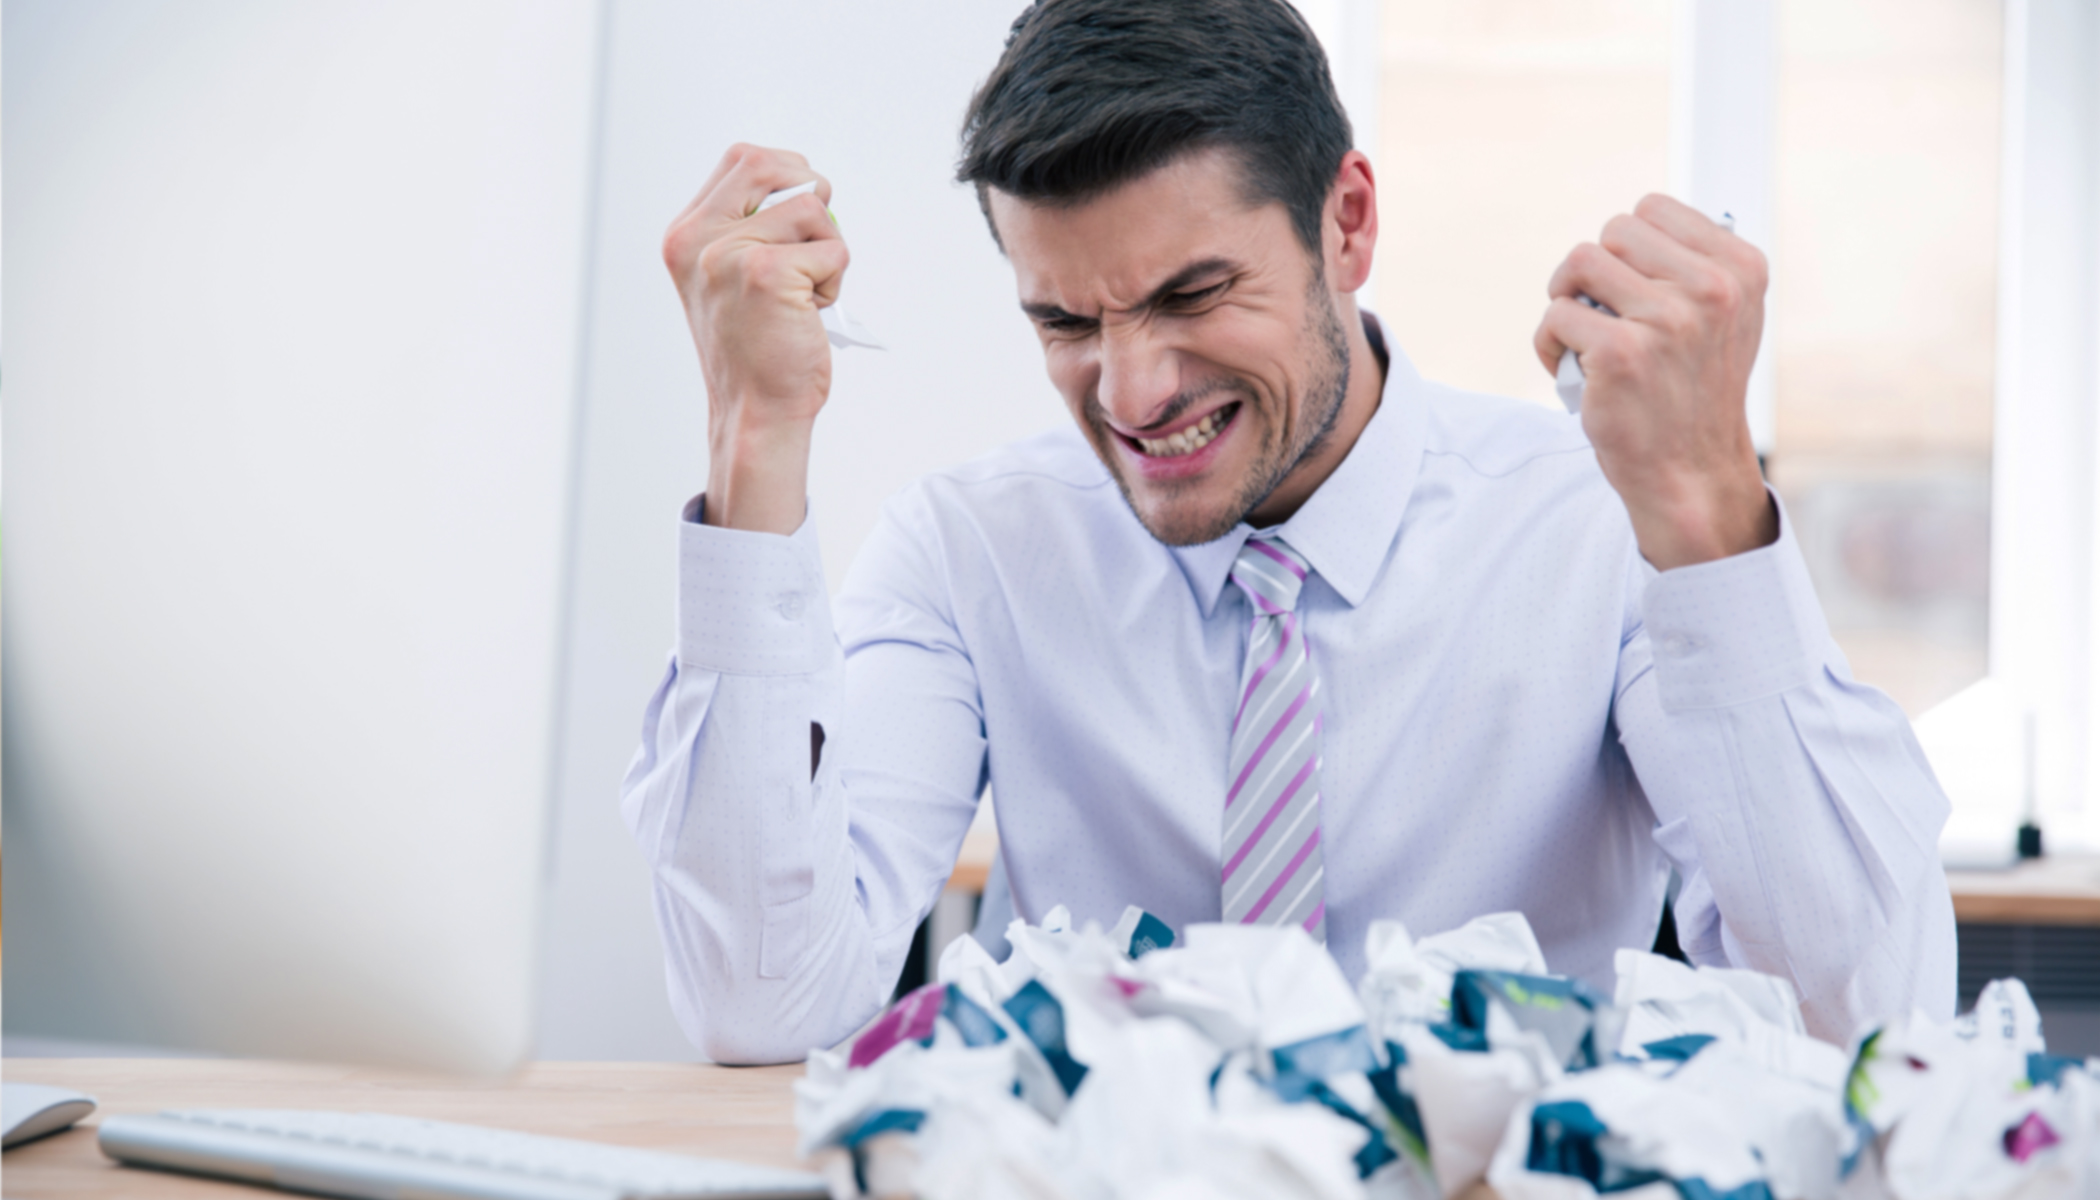 Be in Control of Your Anger: Ways to Manage Rage and Tame That Temper